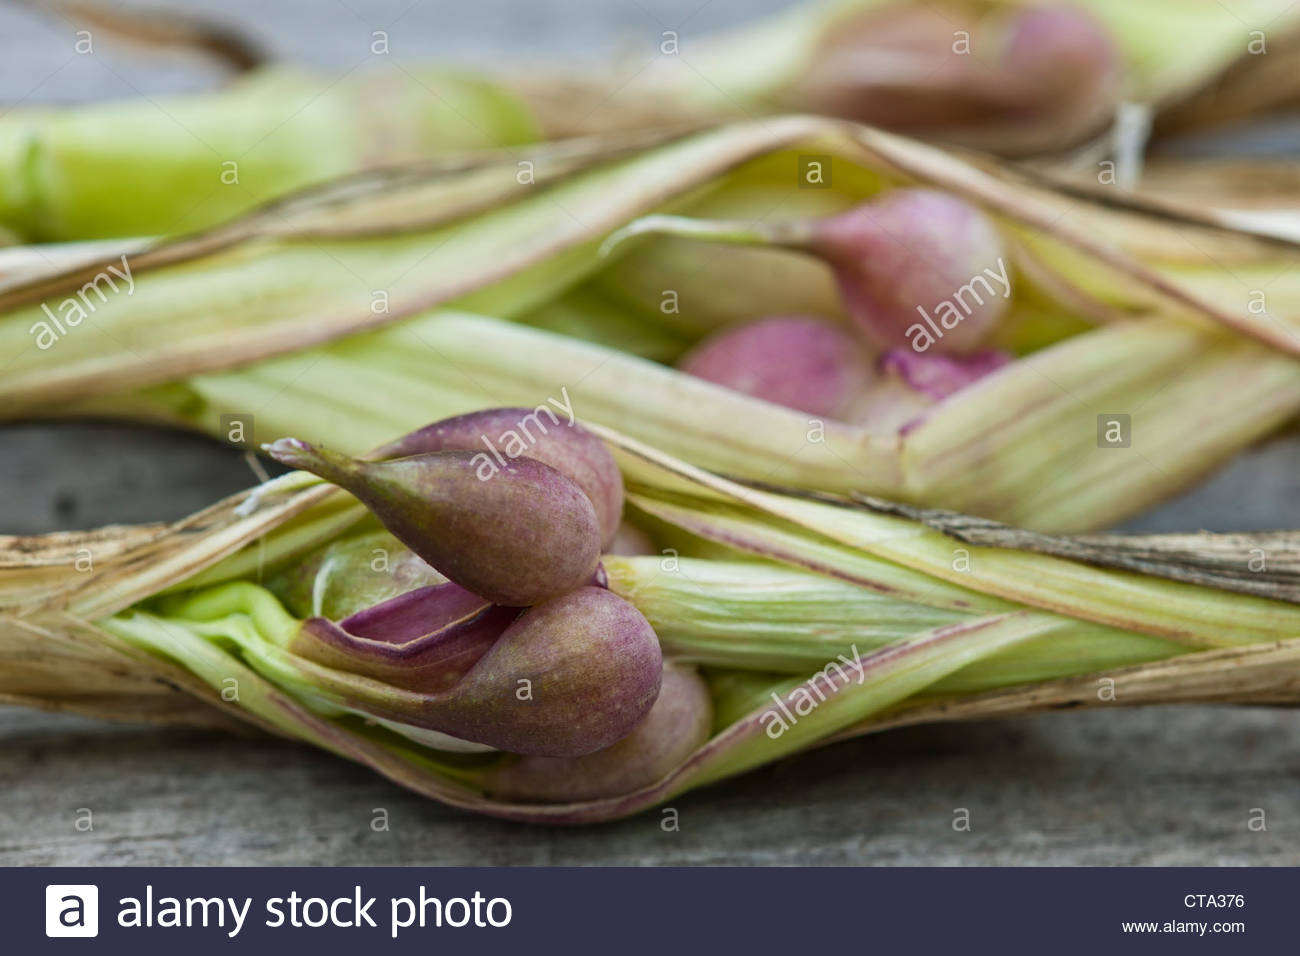 Garlic stem bulbils Allium sativum summer herb culinary organic home grown July kitchen garden plant - Stock Image